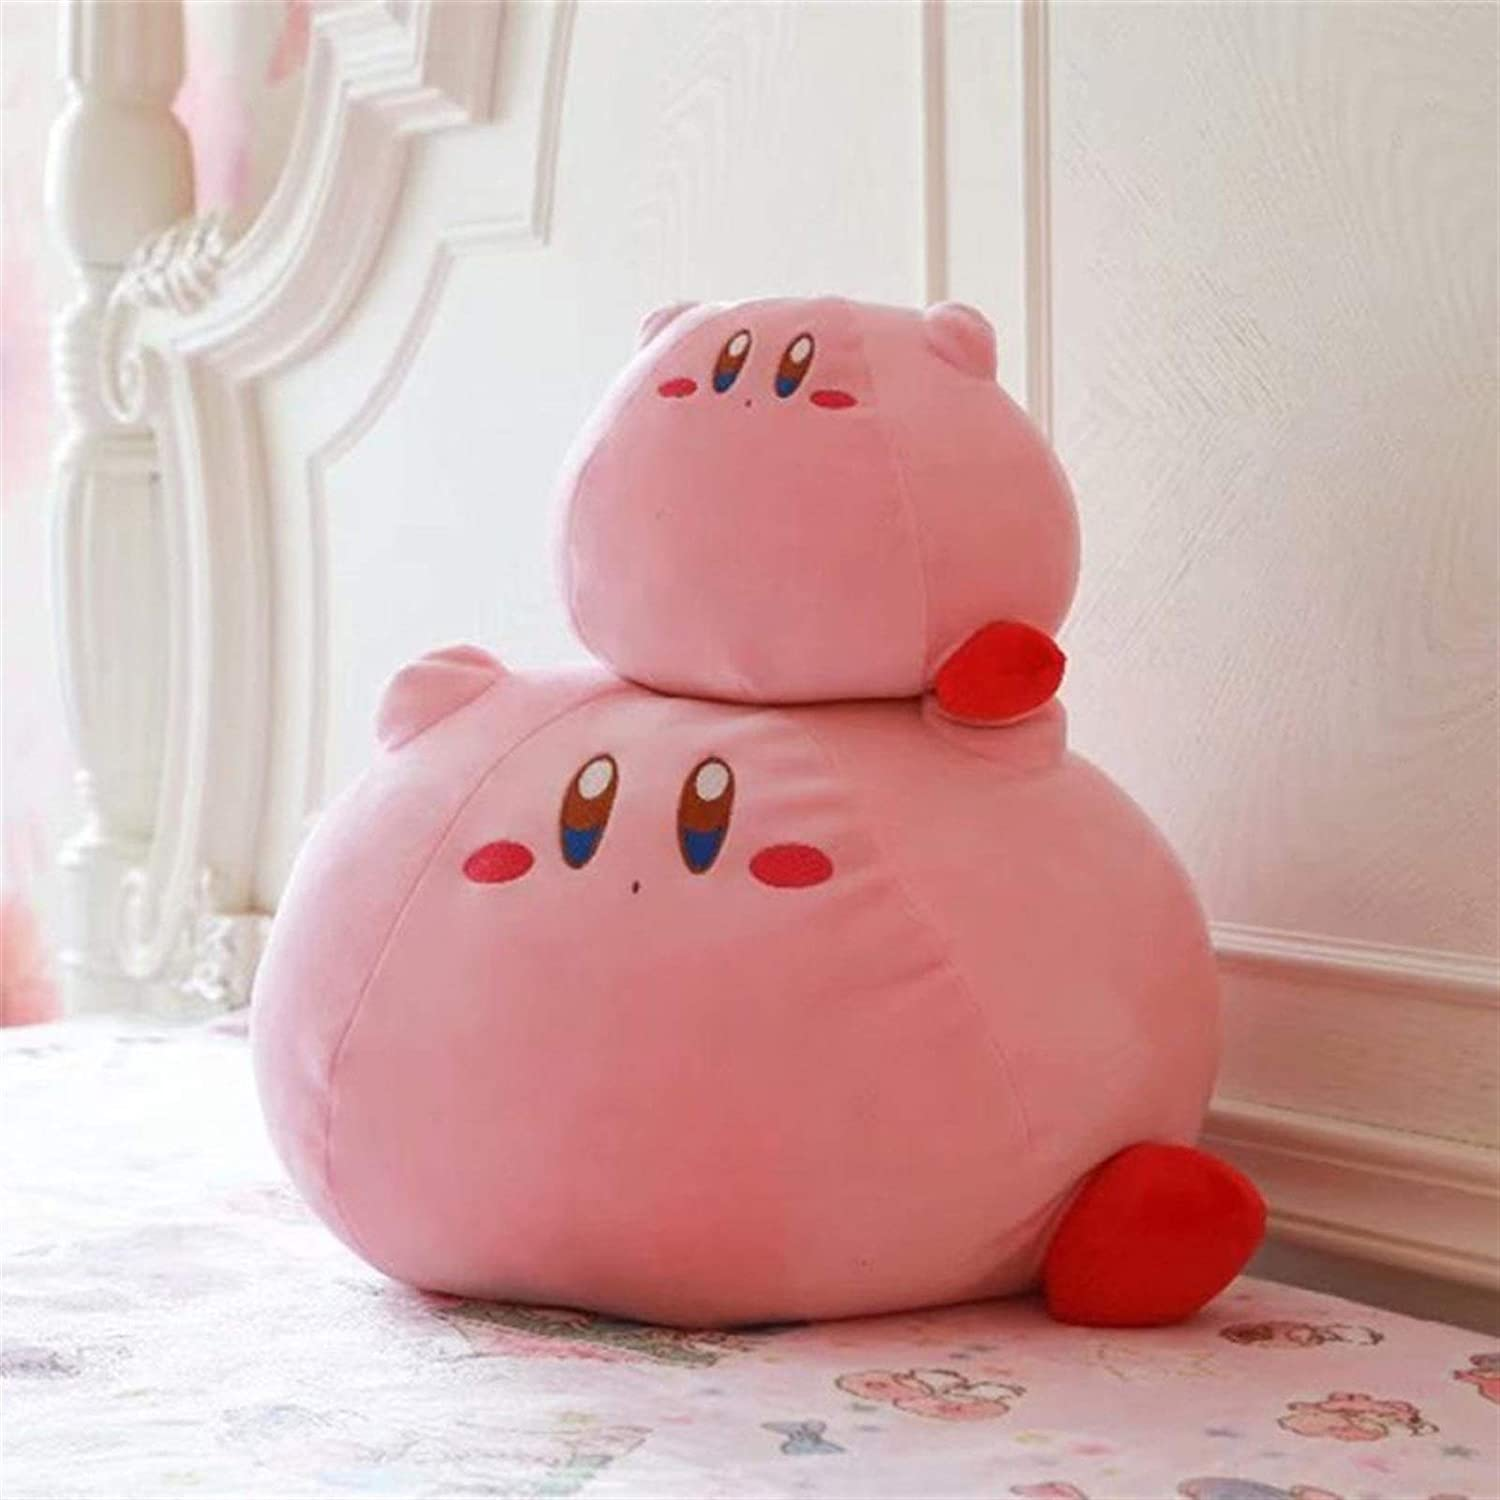 Syuxian Plush Doll New discount Game Anim Popularity Toy Soft Large